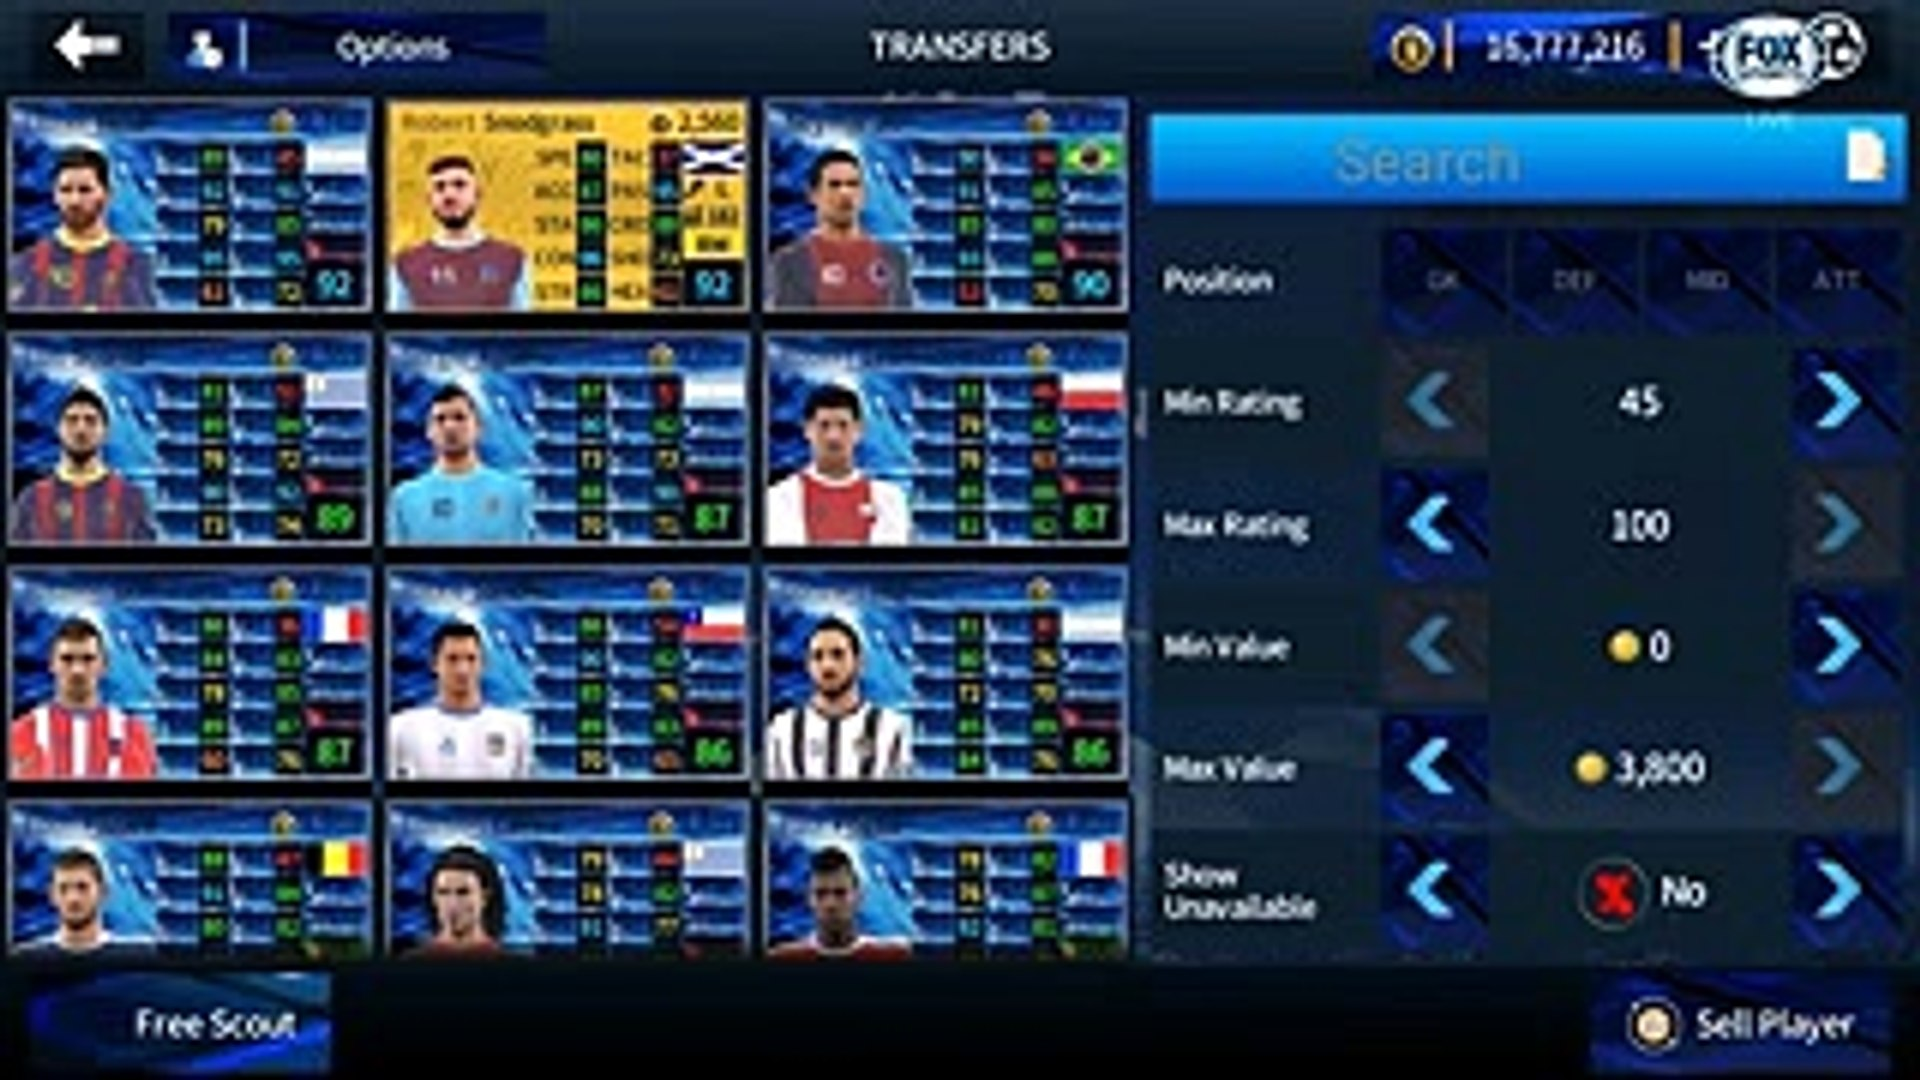 Dream League Soccer 2019 Mod UEFA Champions League - Android 300MB Best  Graphics - YouTube